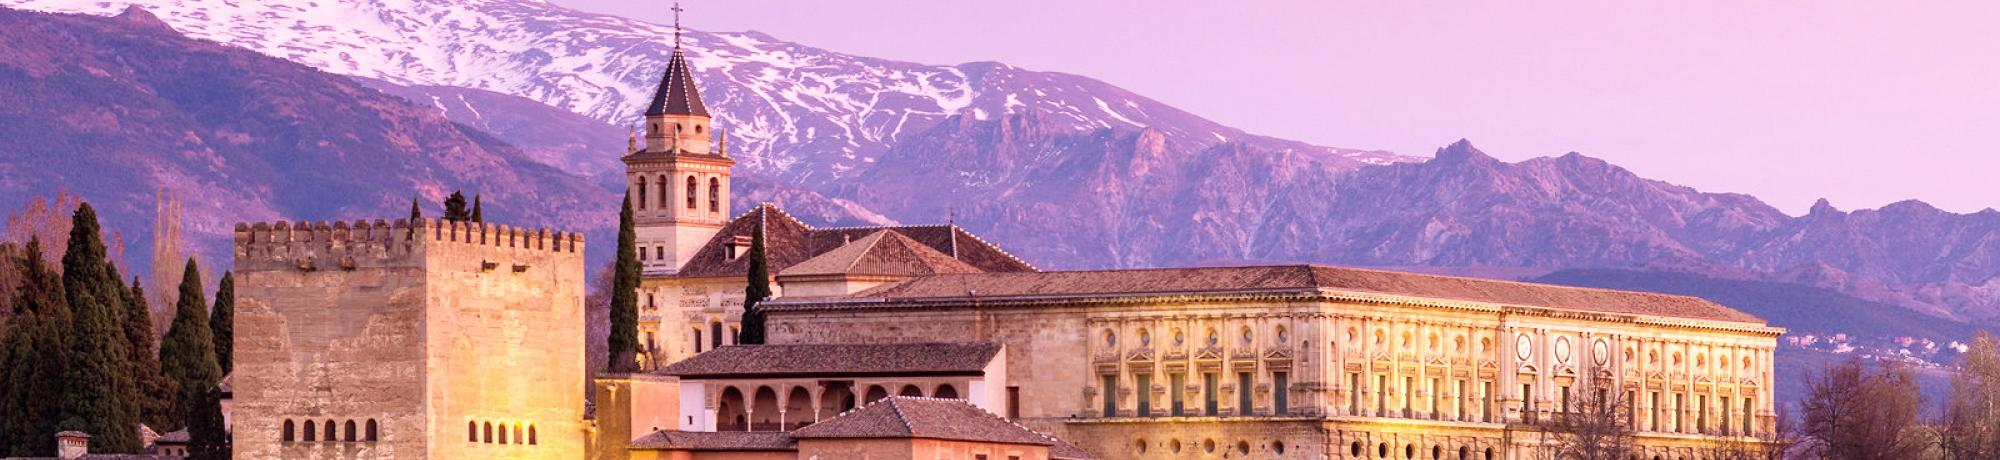 UC Davis Study Abroad, Summer Abroad Spain, Three Cultures of Medieval Spain Program, Header Image, Travel Page